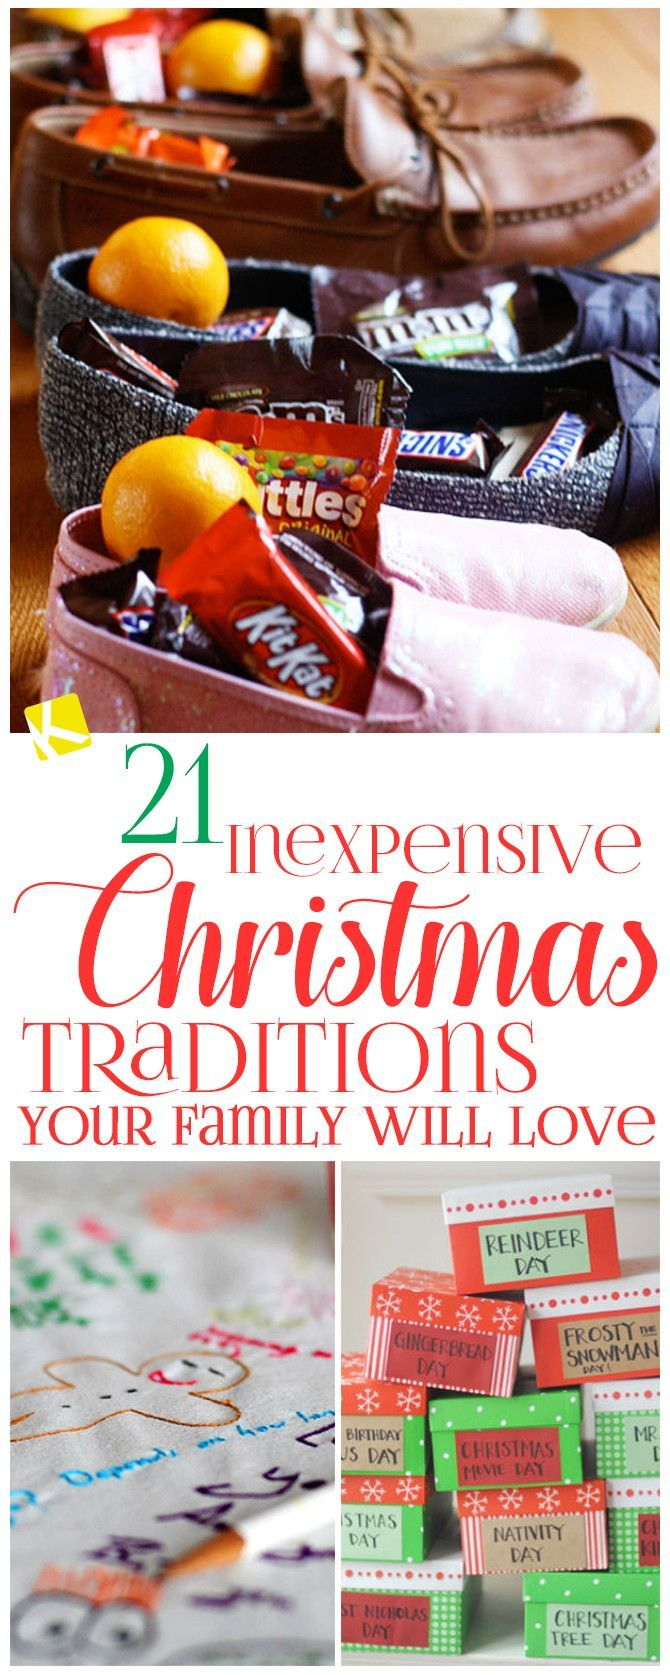 Deck the halls how to decorate on a budget family dollar - 21 Free Or Cheap Family Christmas Traditions